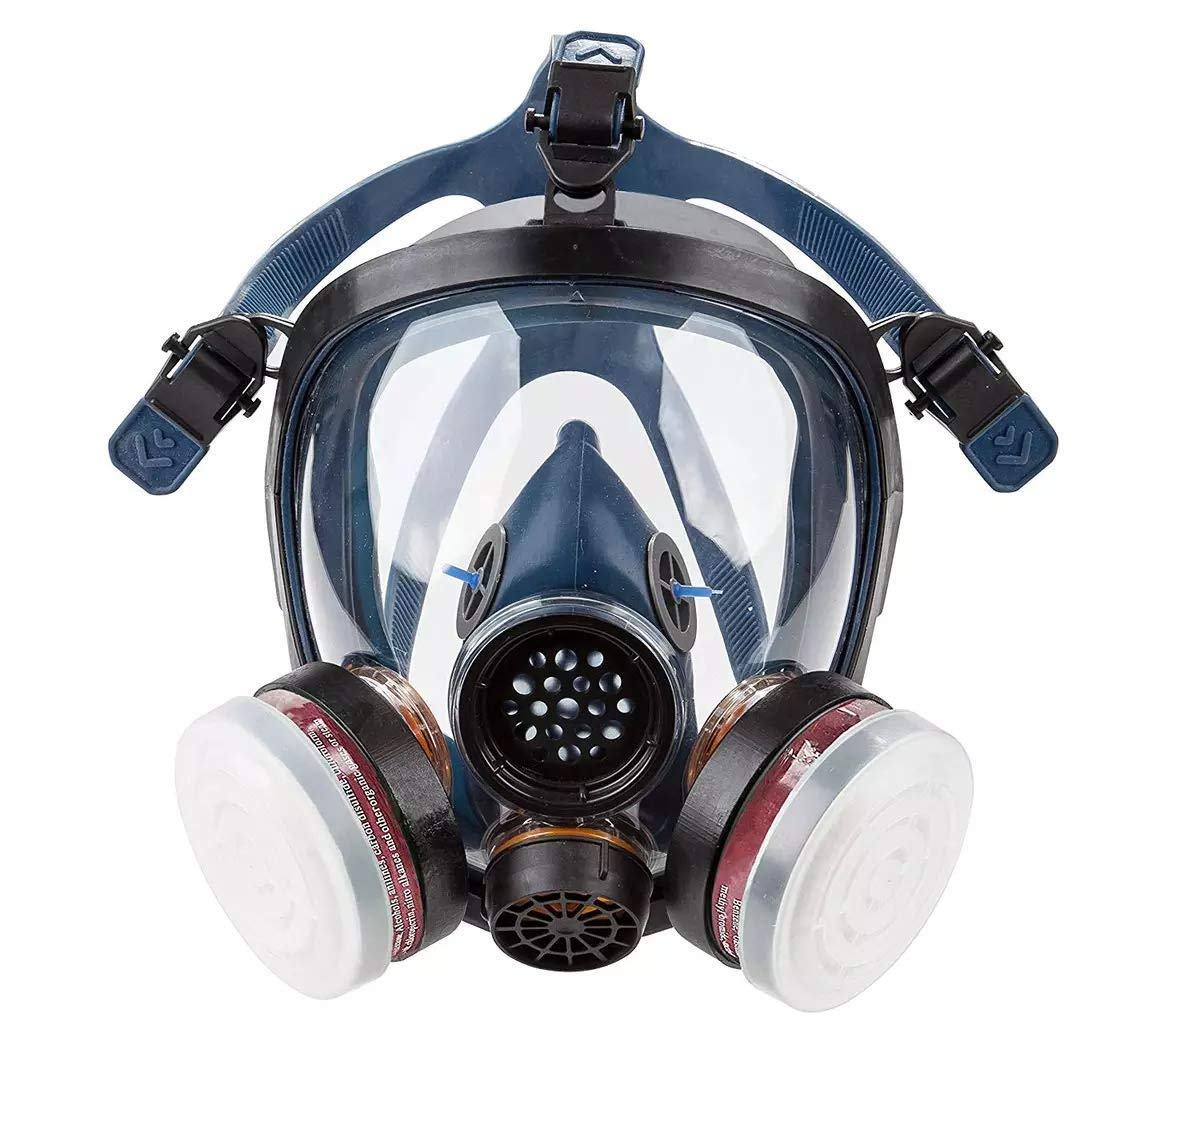 Phoenixfly99 Organic Vapor Full Face Respirator Safety Mask N95 Double Activated Charcoal Air filter For Painting Formaldehyde Chemicals Respiratory Protection (Safety mask+1 Pair 3# filter) by Phoenixfly99 (Image #1)